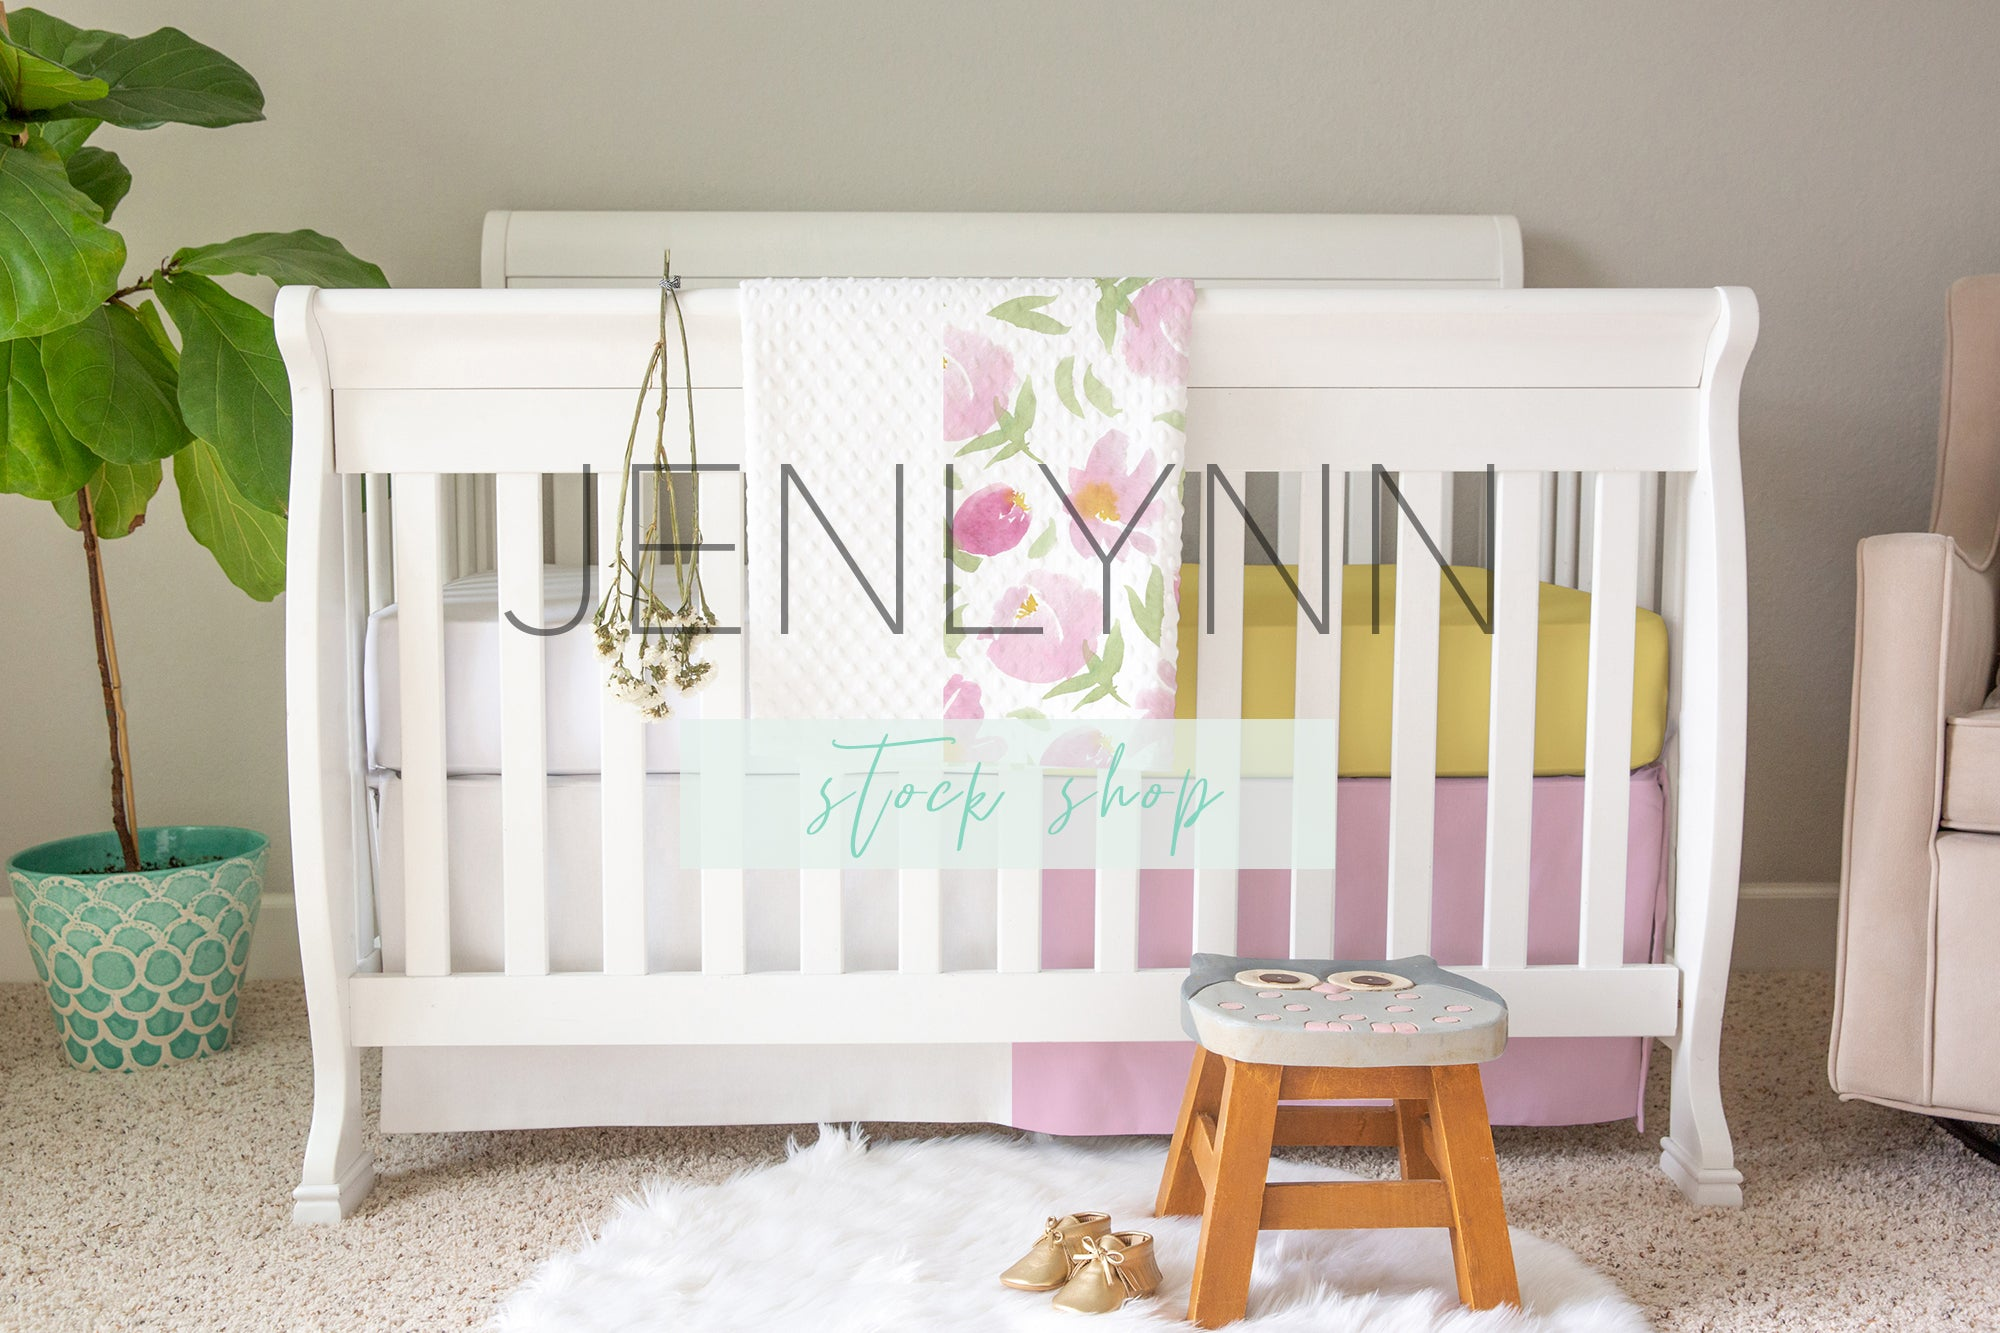 Crib Set Mockup #9 | Crib Sheet, Dimple Dot Blanket, Crib Skirt